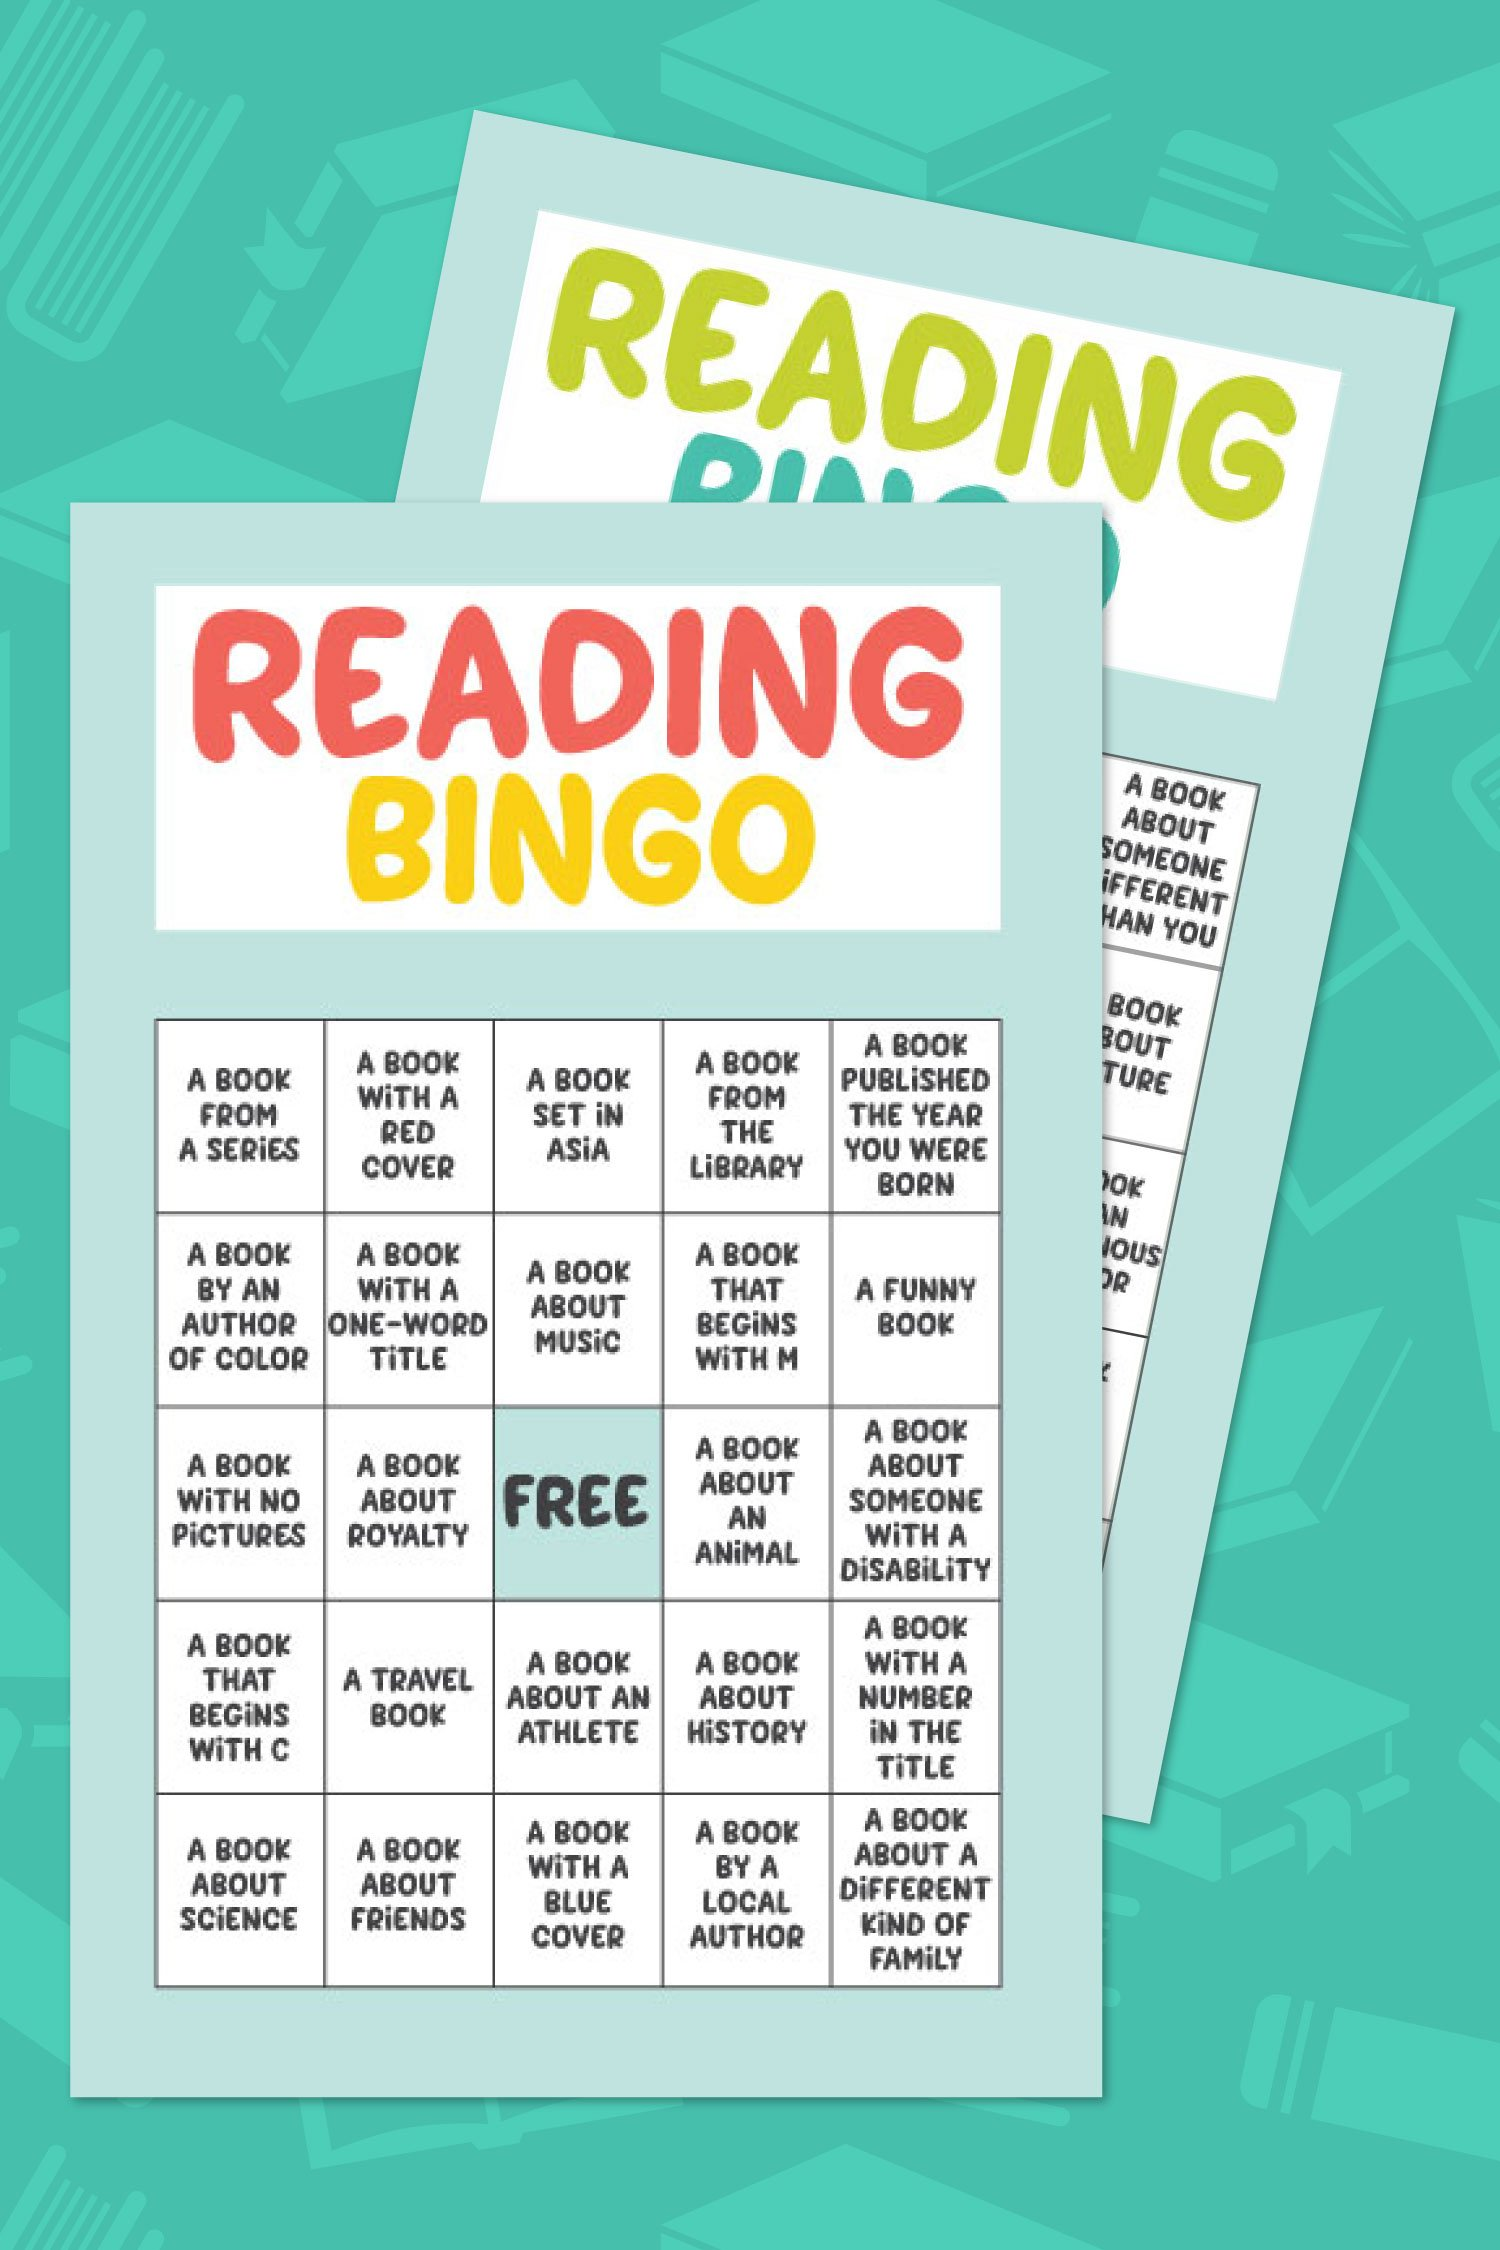 Free Printable Reading Bingo on teal background